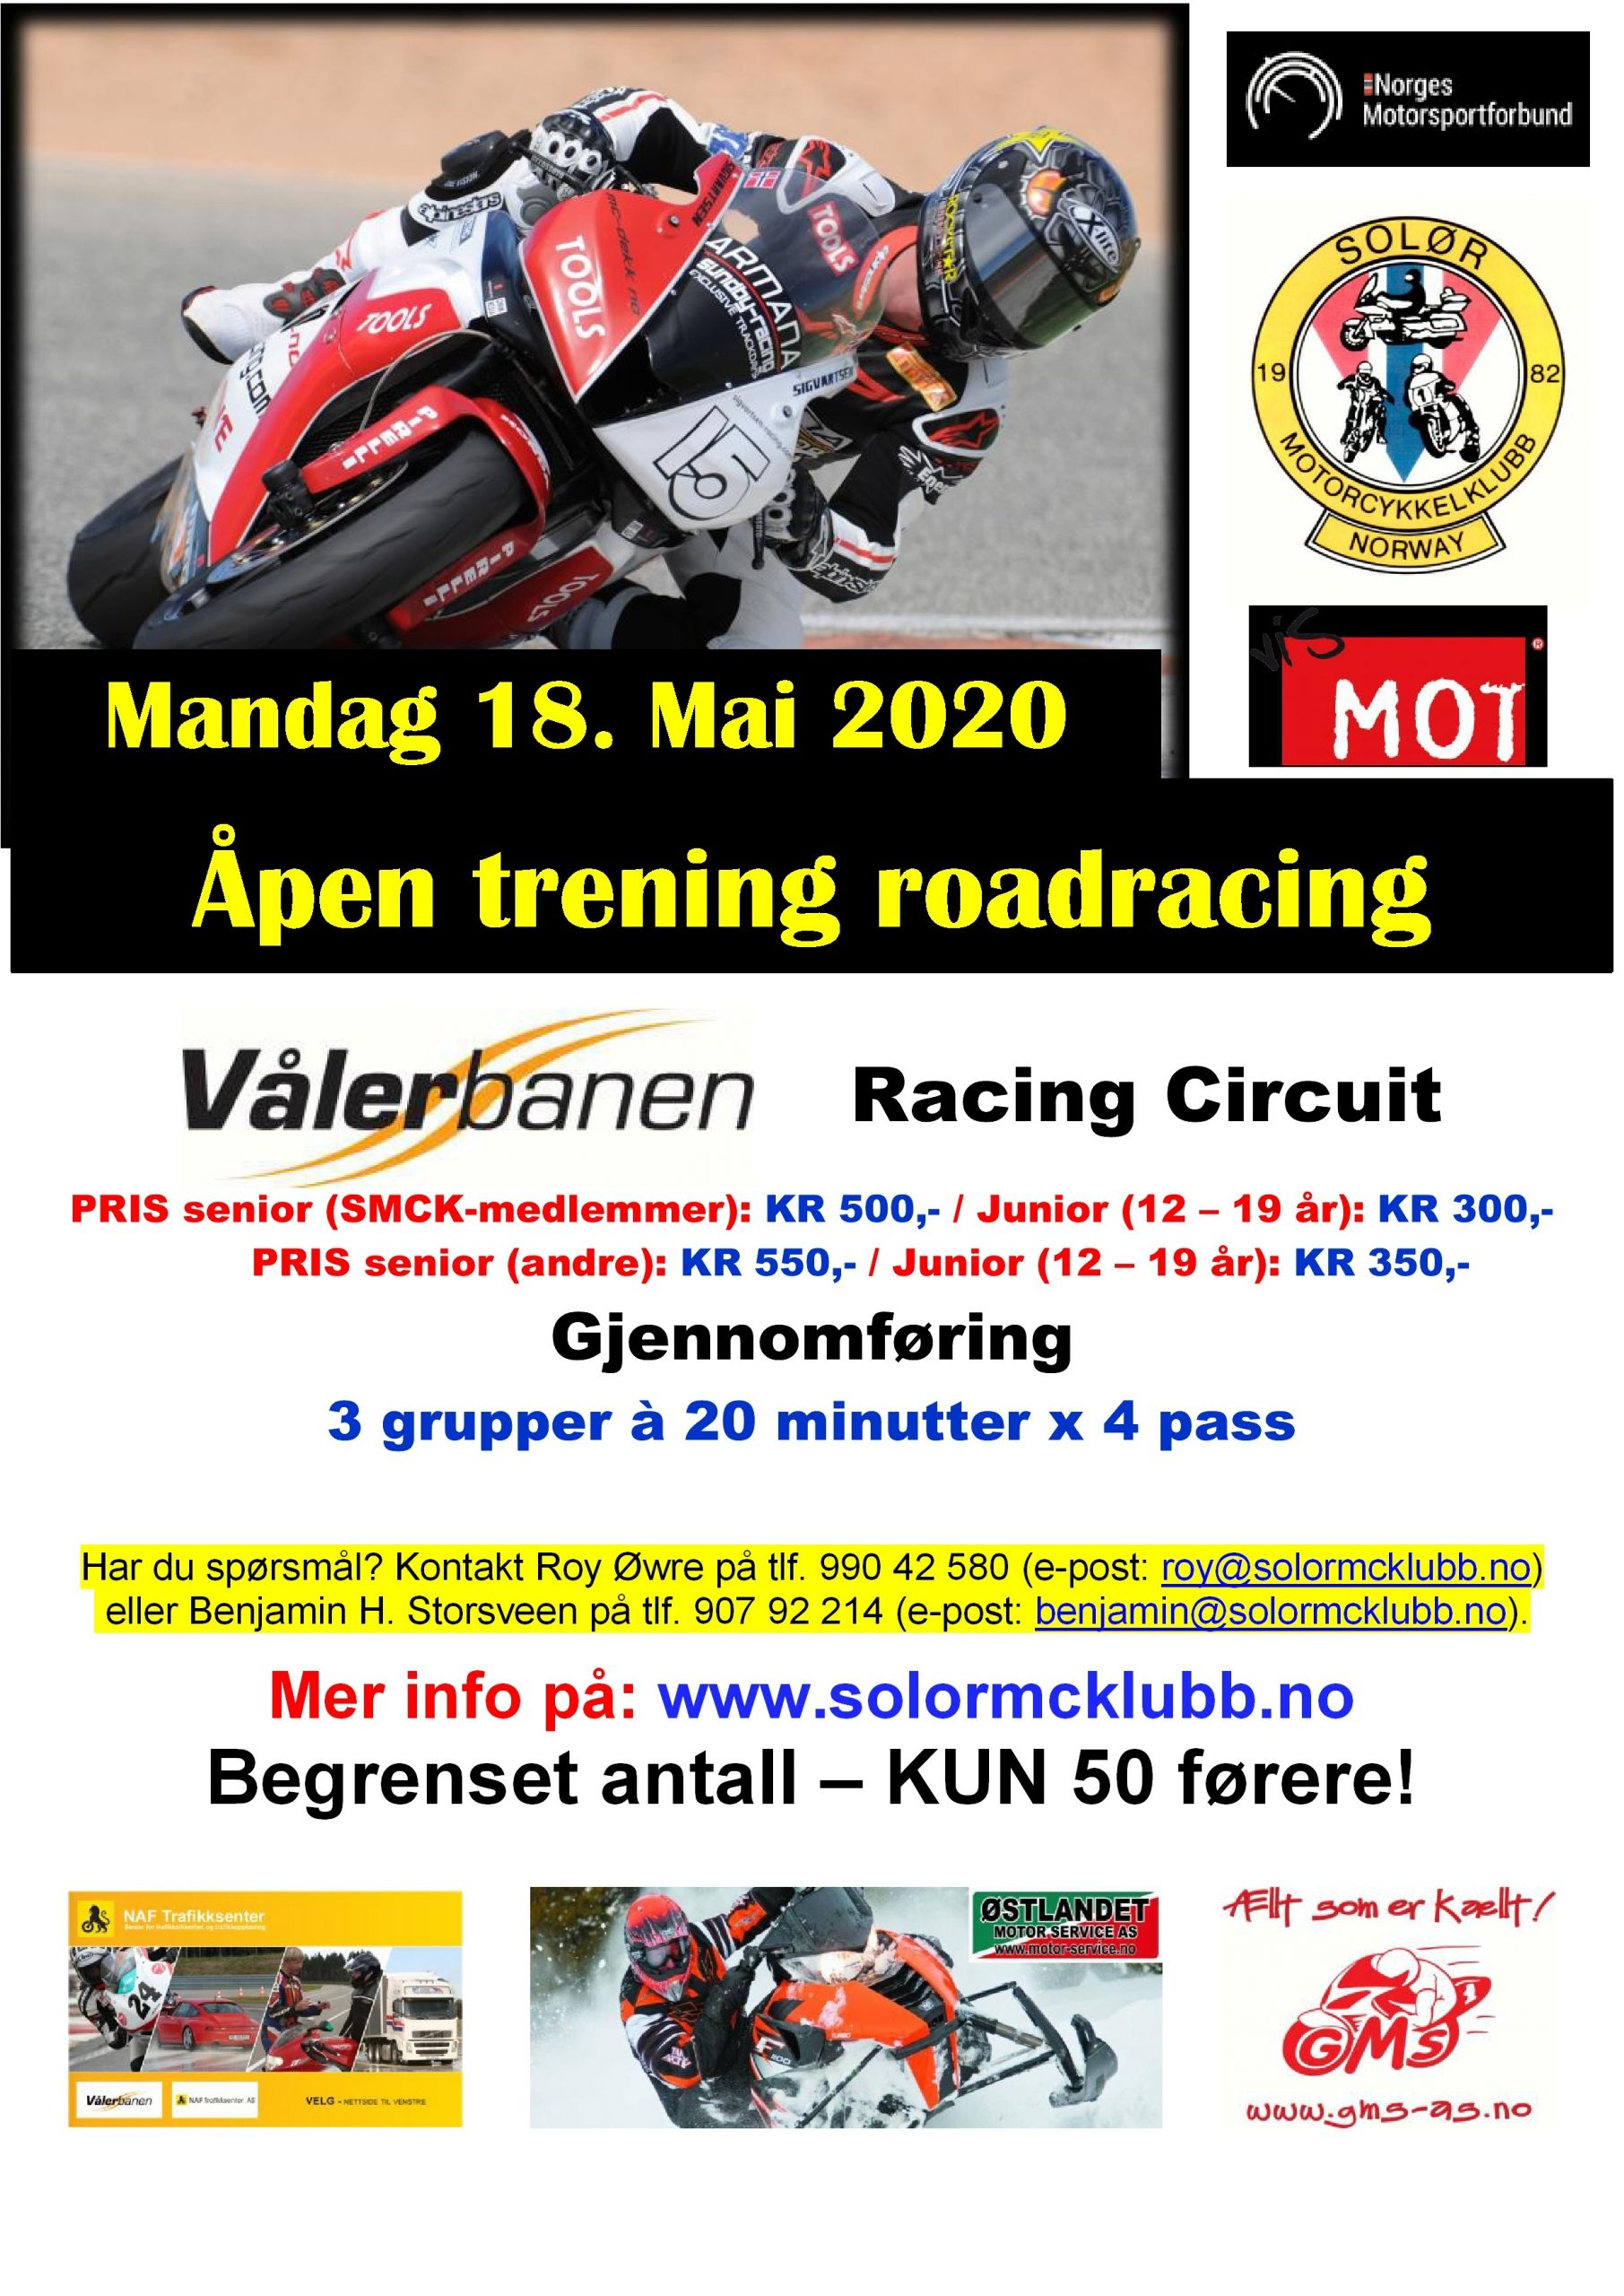 POSTER - trening roadracing på Vålerbanen – 18. Mai 2020